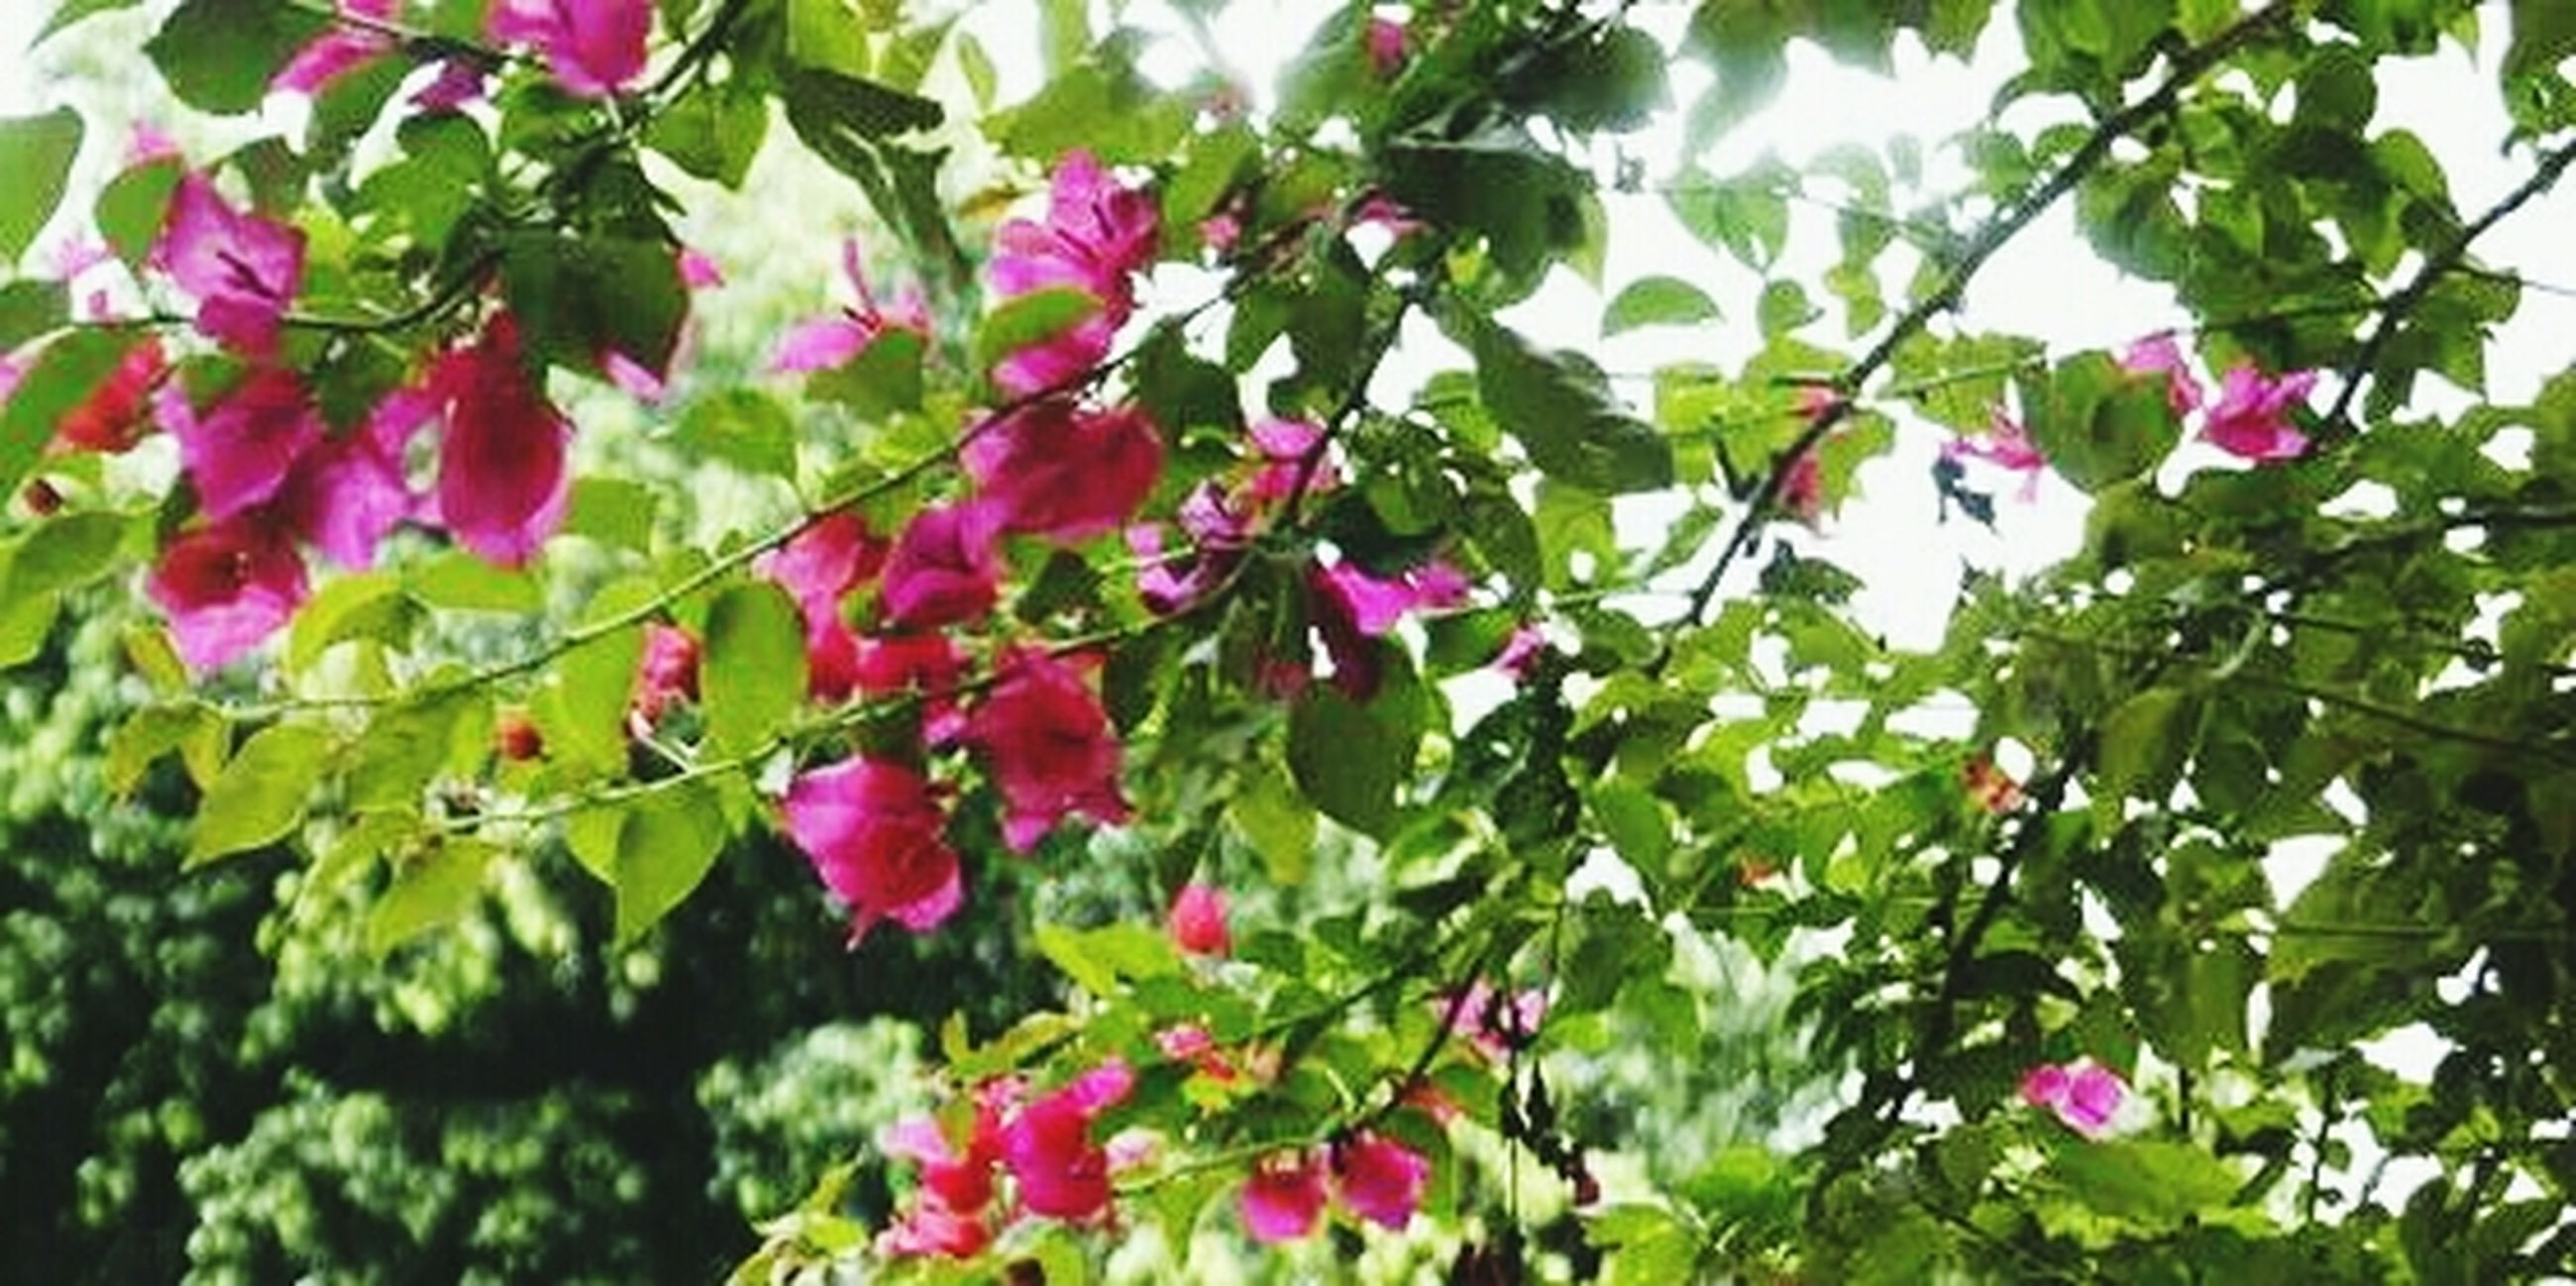 growth, flower, freshness, leaf, pink color, branch, beauty in nature, tree, nature, low angle view, fragility, plant, green color, close-up, focus on foreground, day, outdoors, blooming, no people, pink